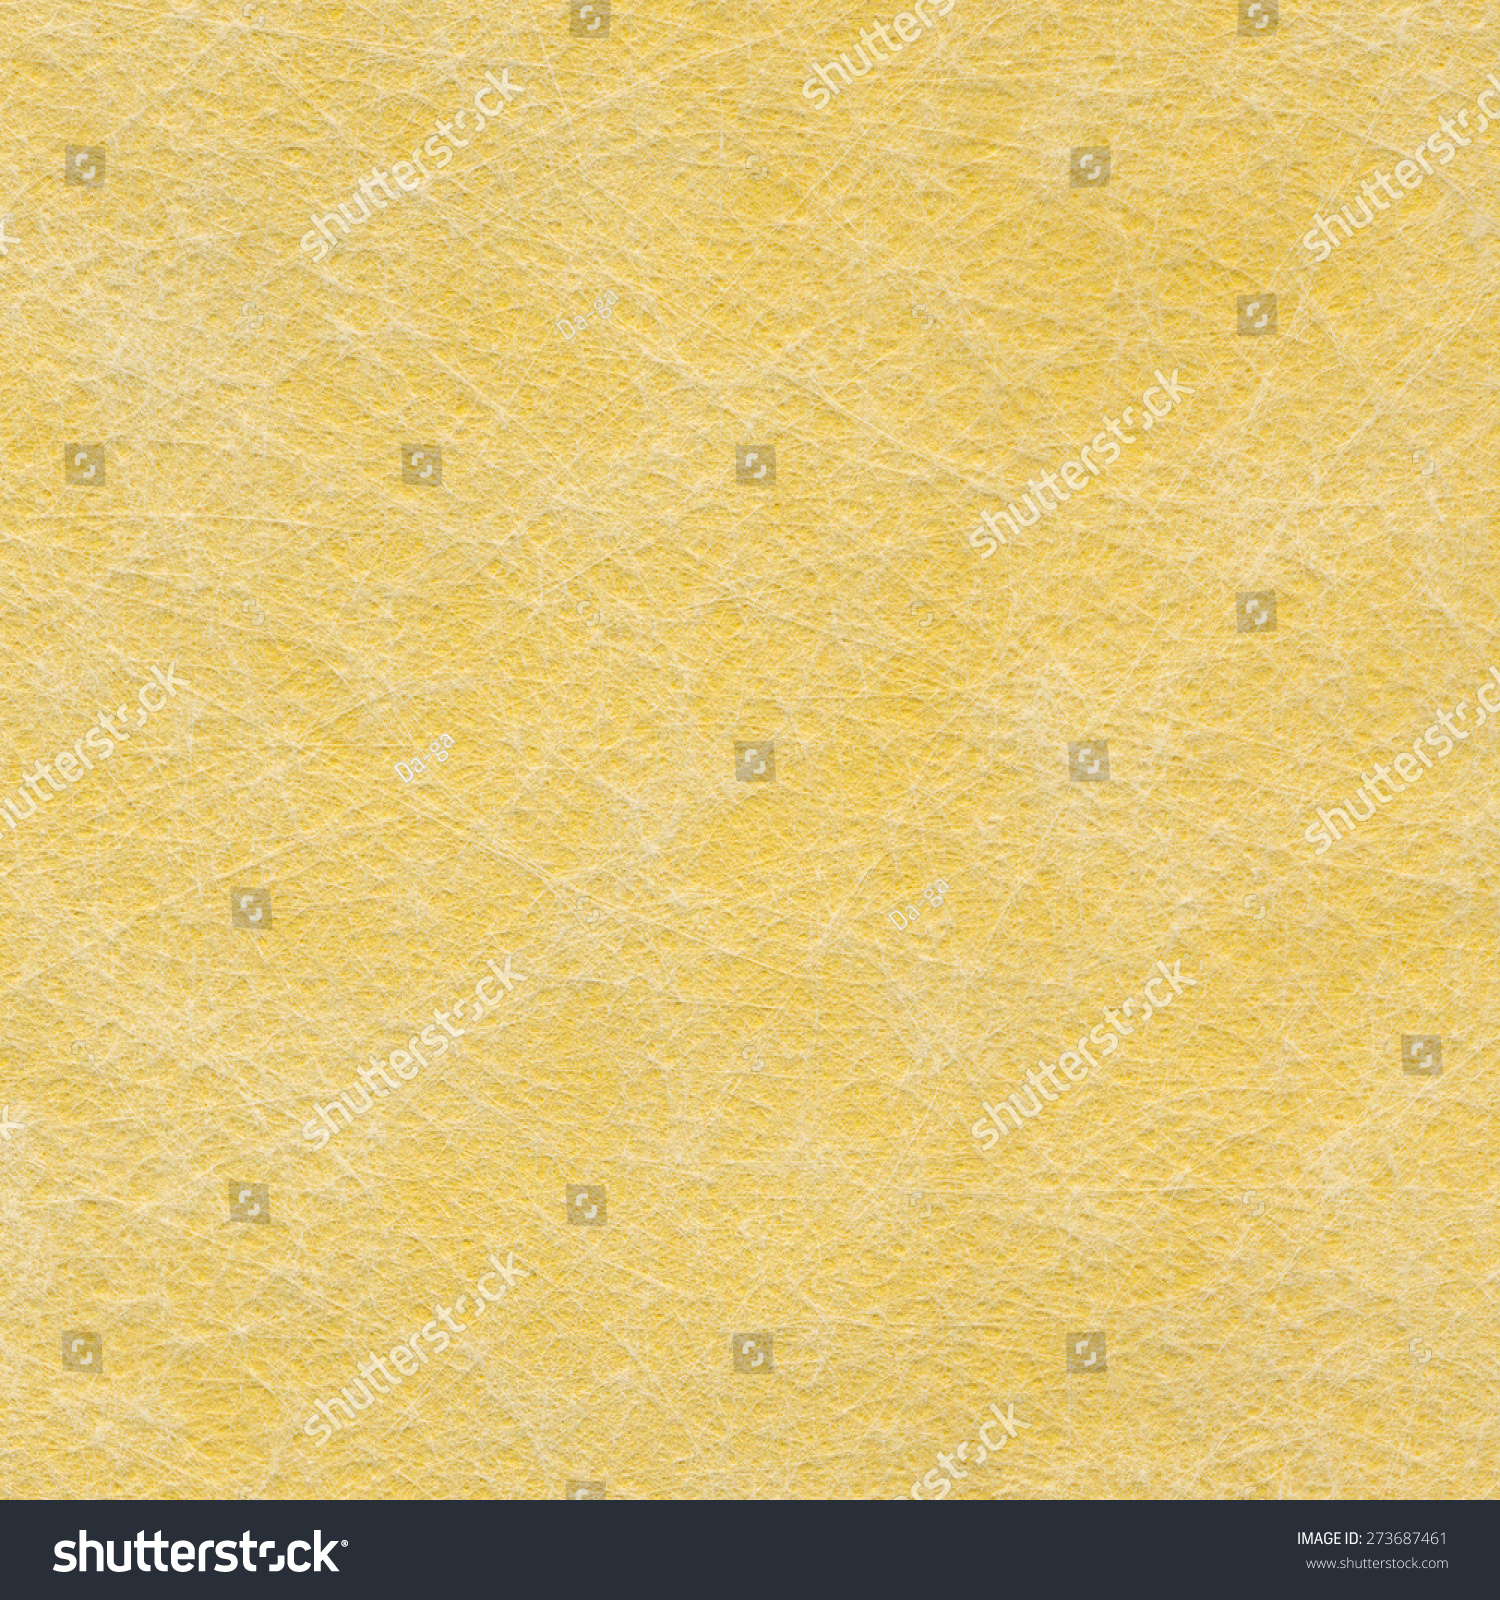 Yellow and white pattern background - photo#23